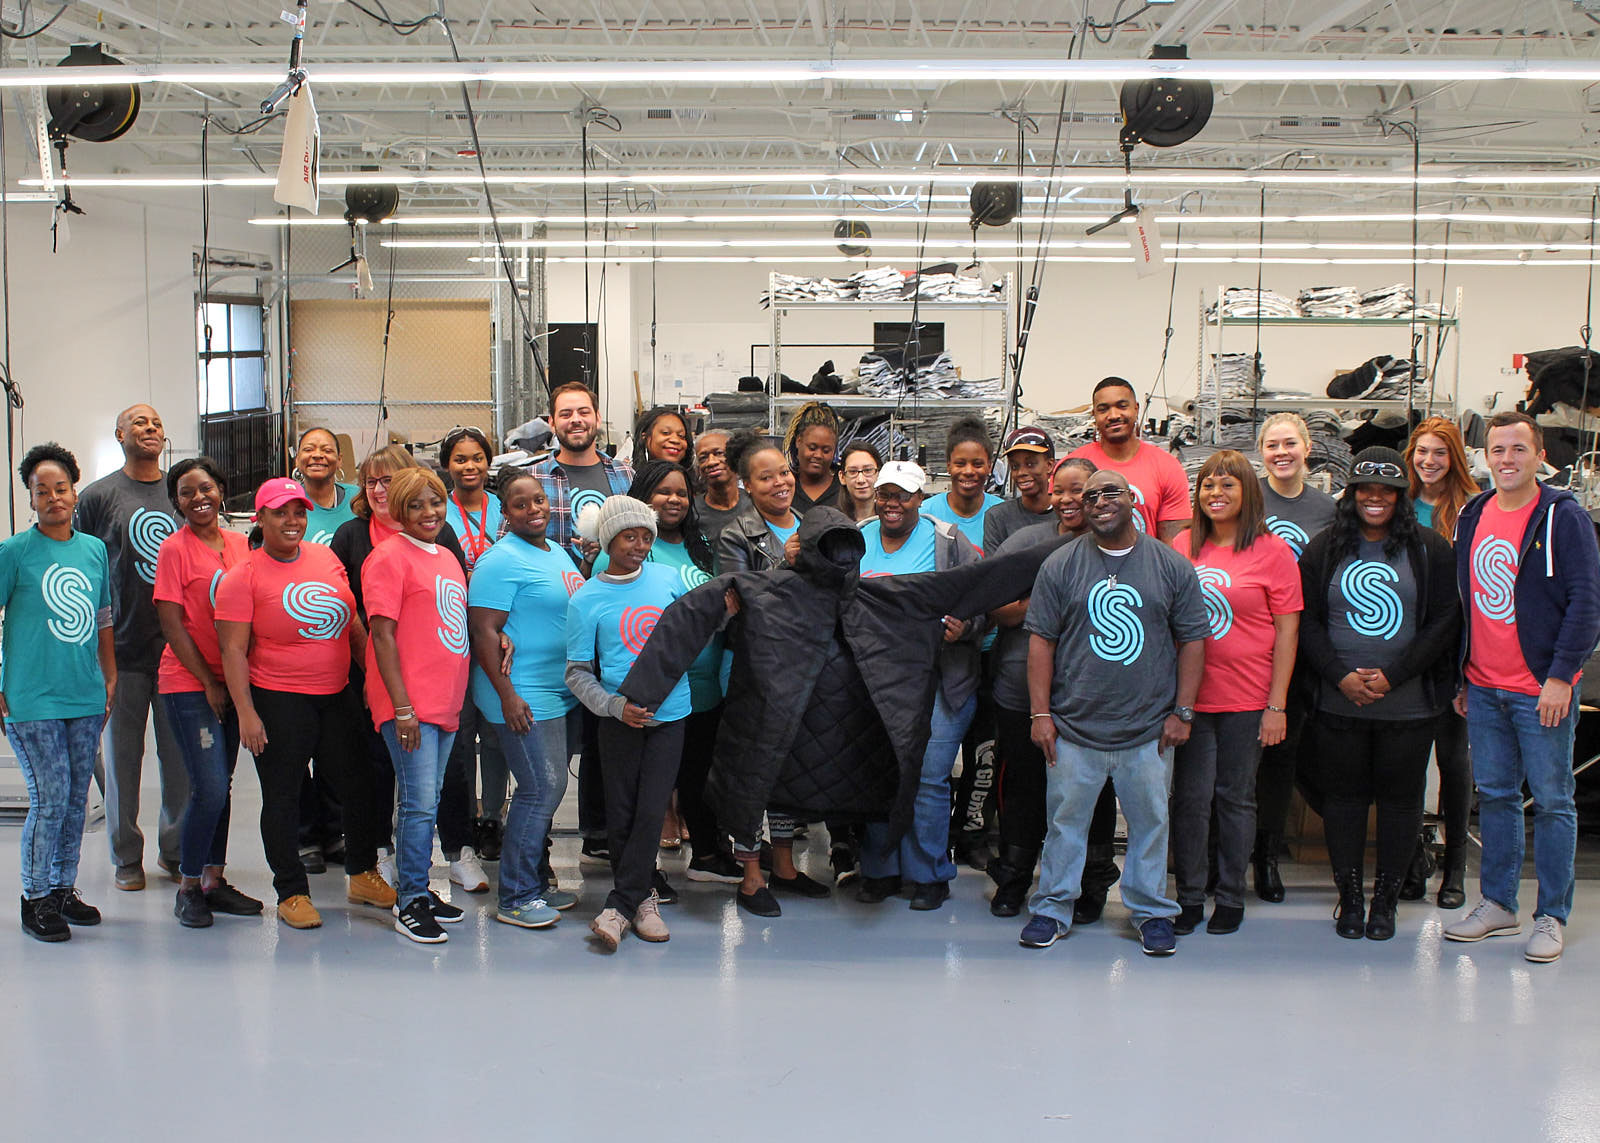 The Spreetail Community Impact team kicks off a new partnership with Detroit-based Empowerment Plan in 2018. The organizations partnered for the Spread the Warmth initiative, which provided 2,000 EMPWR Coats to individuals experiencing homelessness across the US.